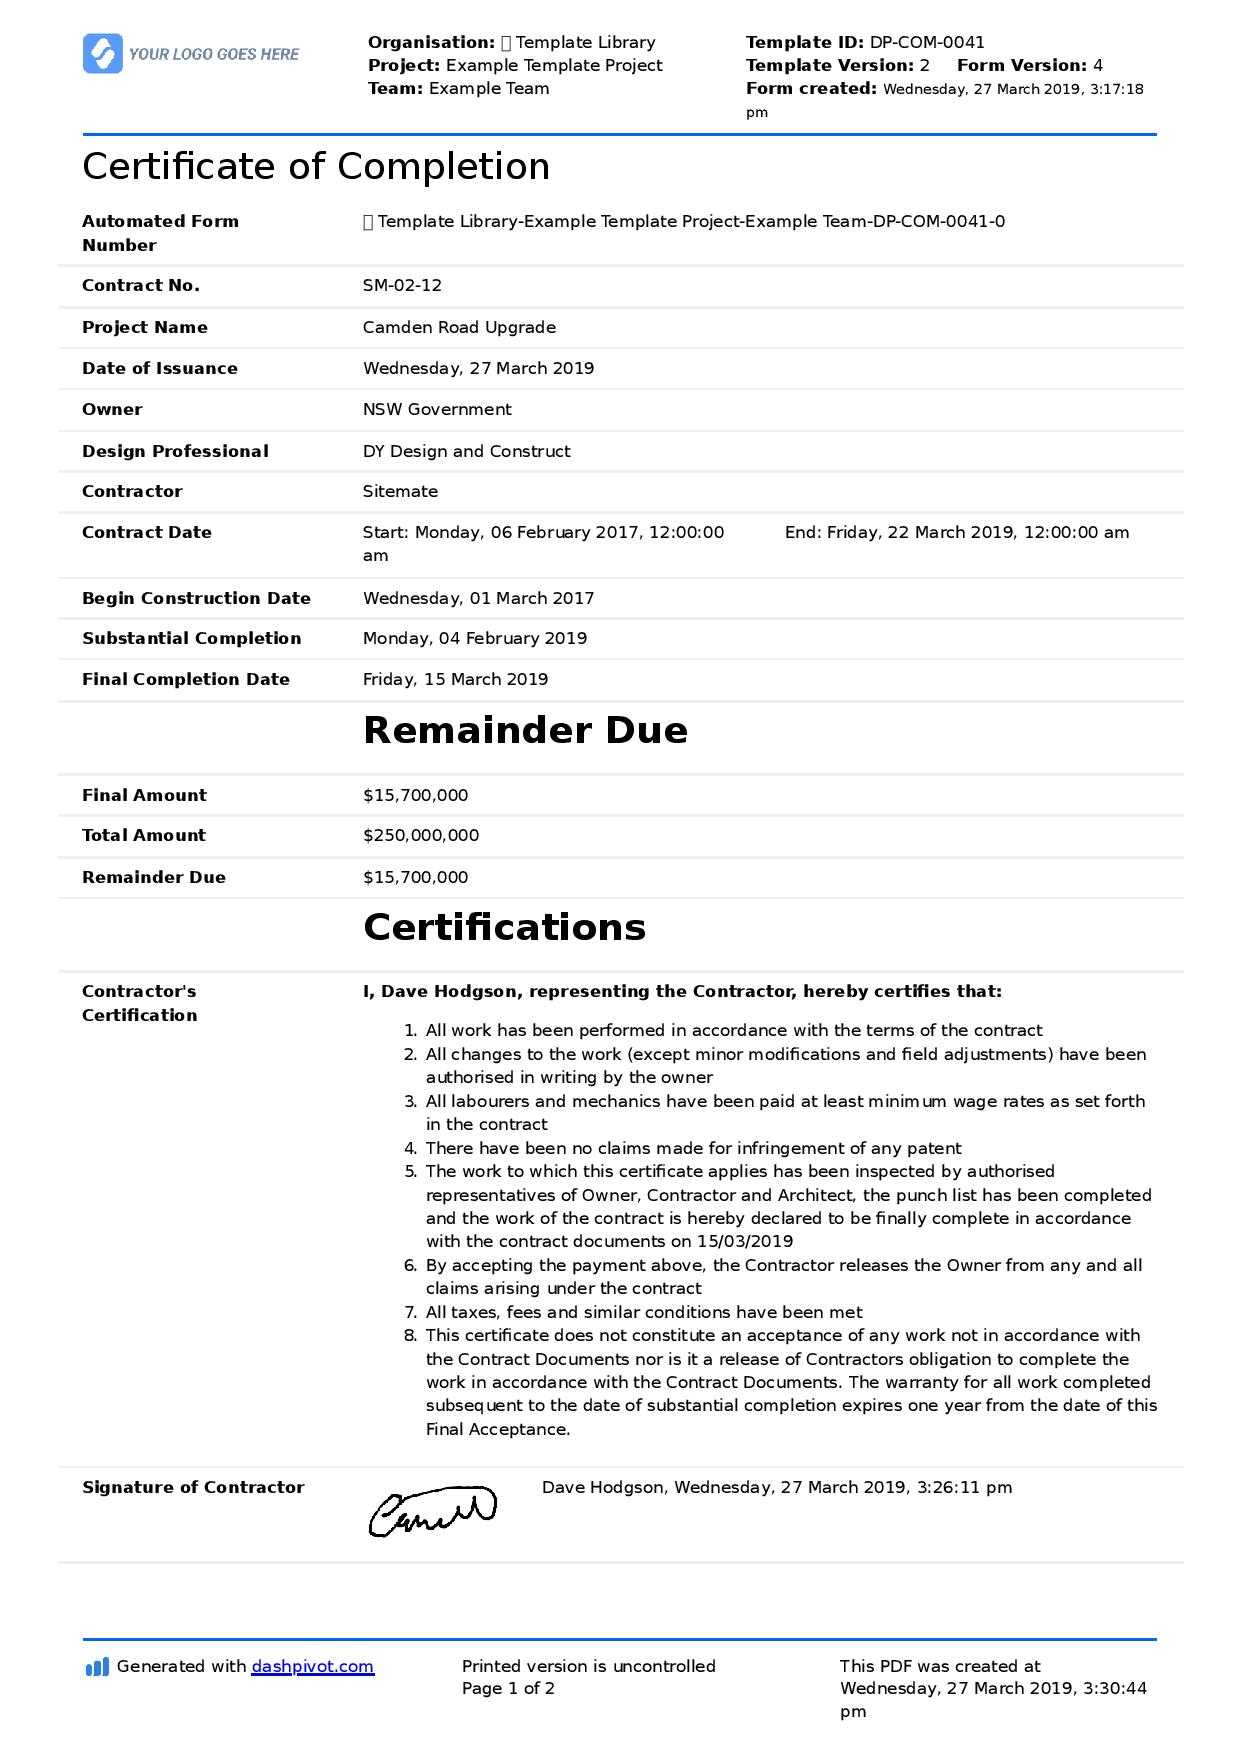 Certificate Of Completion For Construction (Free Template + Throughout Construction Certificate Of Completion Template